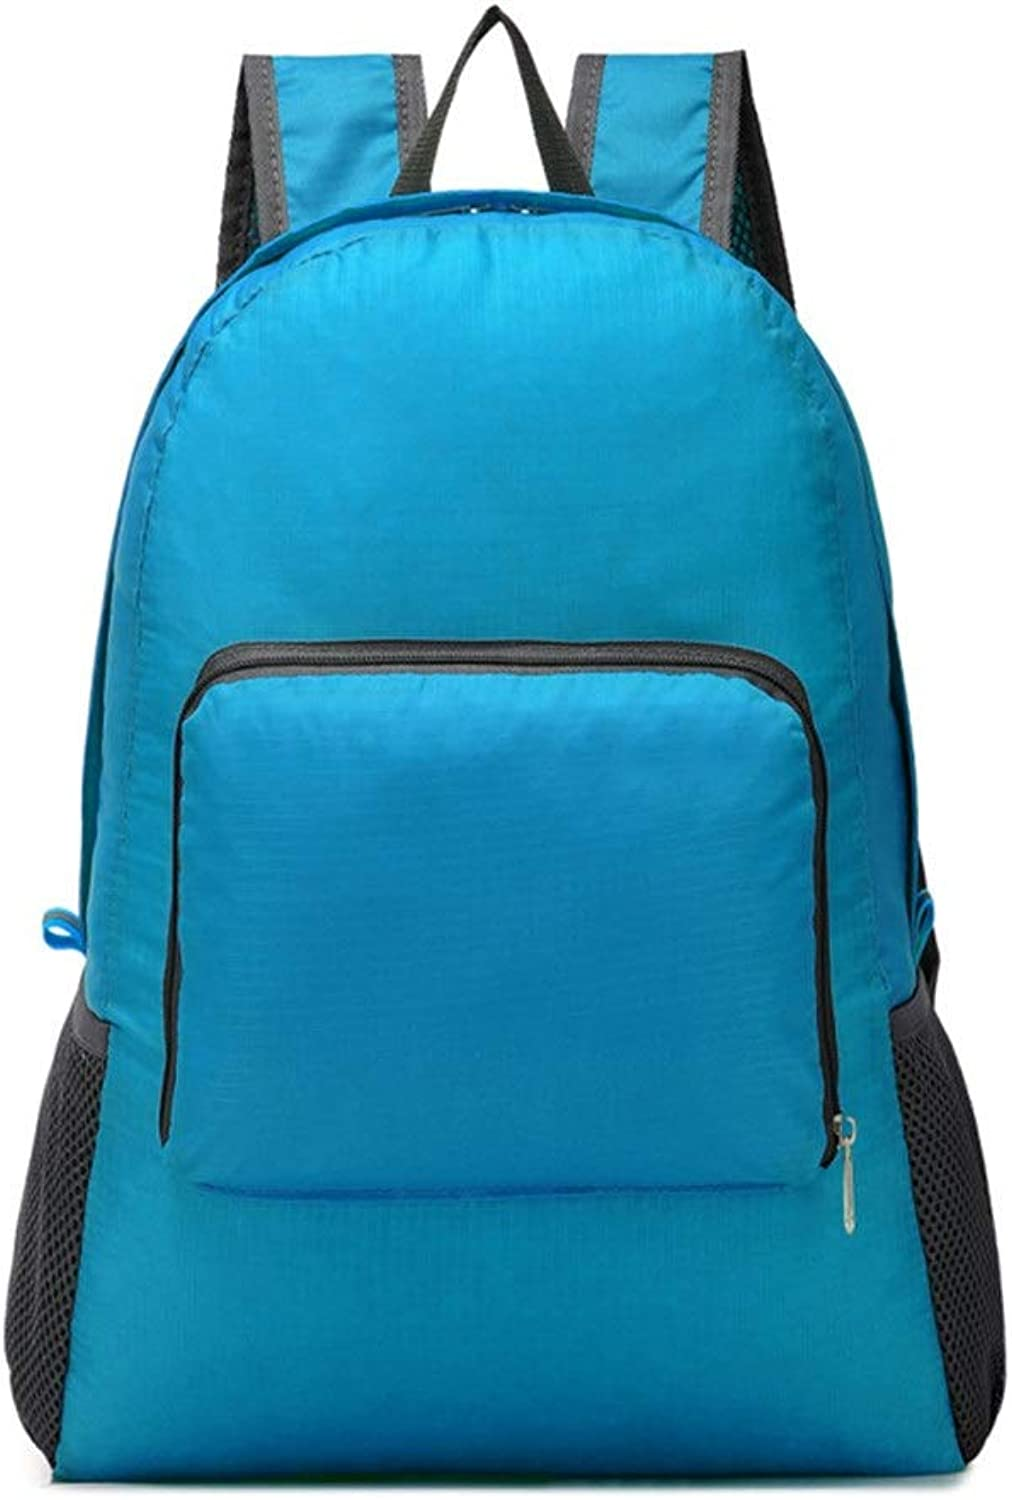 Backpacks Mountaineering Bag Men's Travel Bag Travel Backpack Backpack for School Men's Water Resistant Casual Daypack (color   blueee)